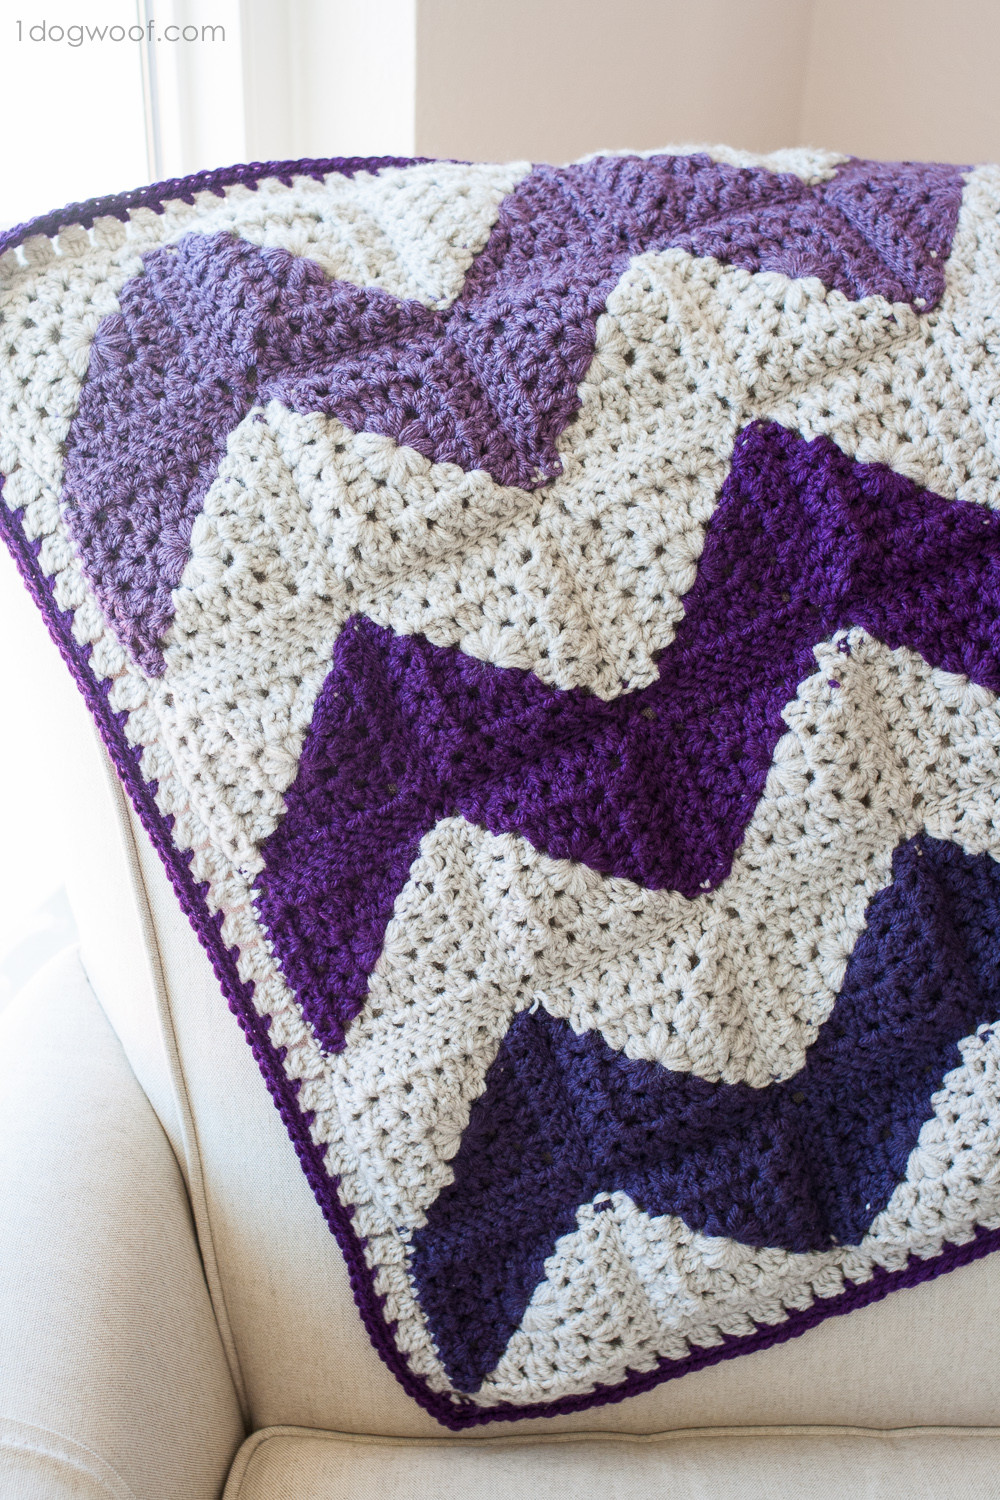 Granny Square Baby Blanket Crochet Pattern Fresh Granny Squares Chevron Afghan Crochet Pattern E Dog Woof Of Awesome 40 Pics Granny Square Baby Blanket Crochet Pattern